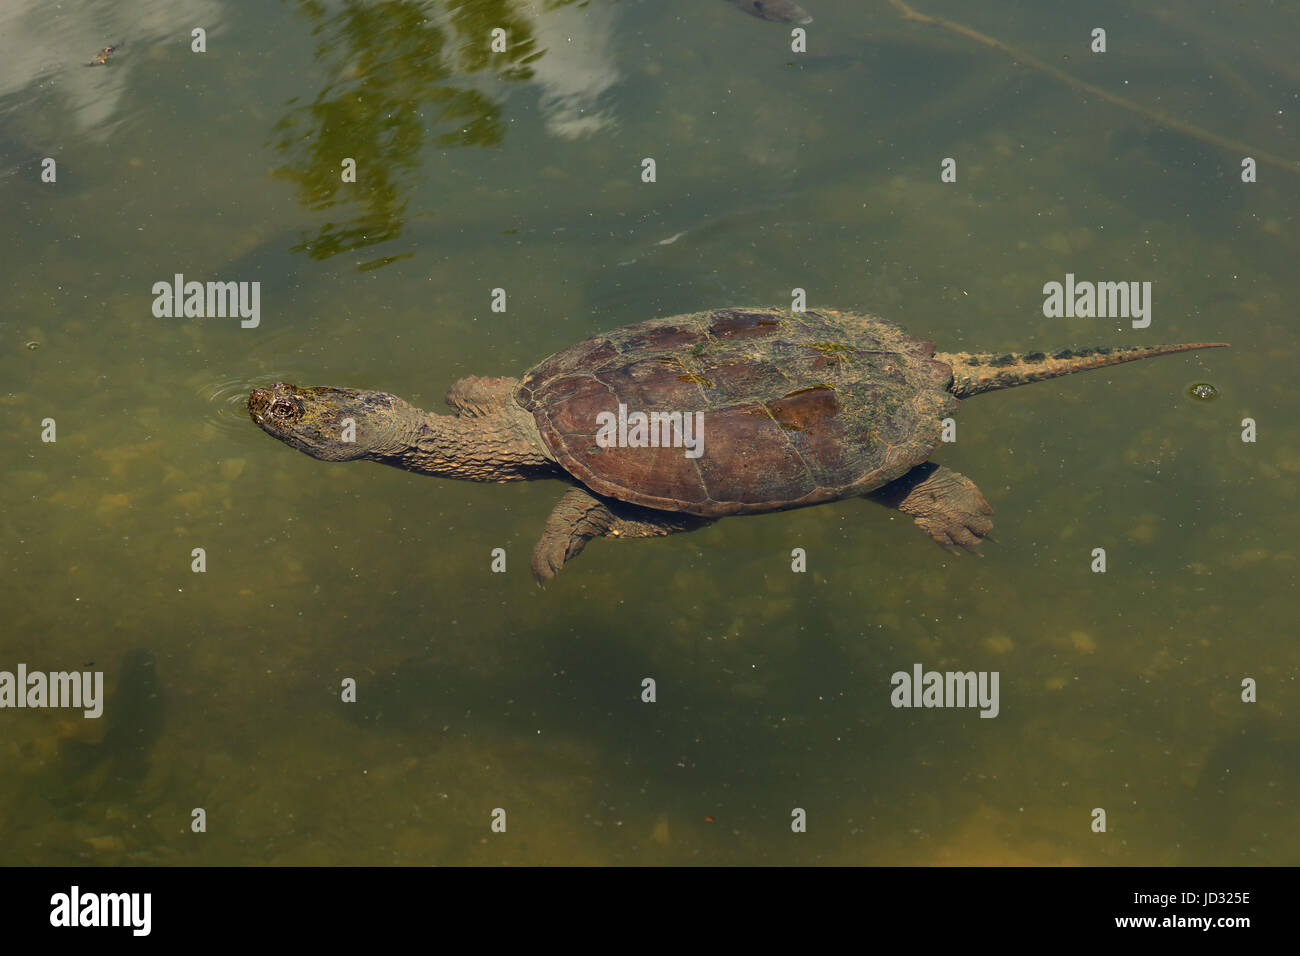 Snapping turtle, Chelydra serpentina Stock Photo